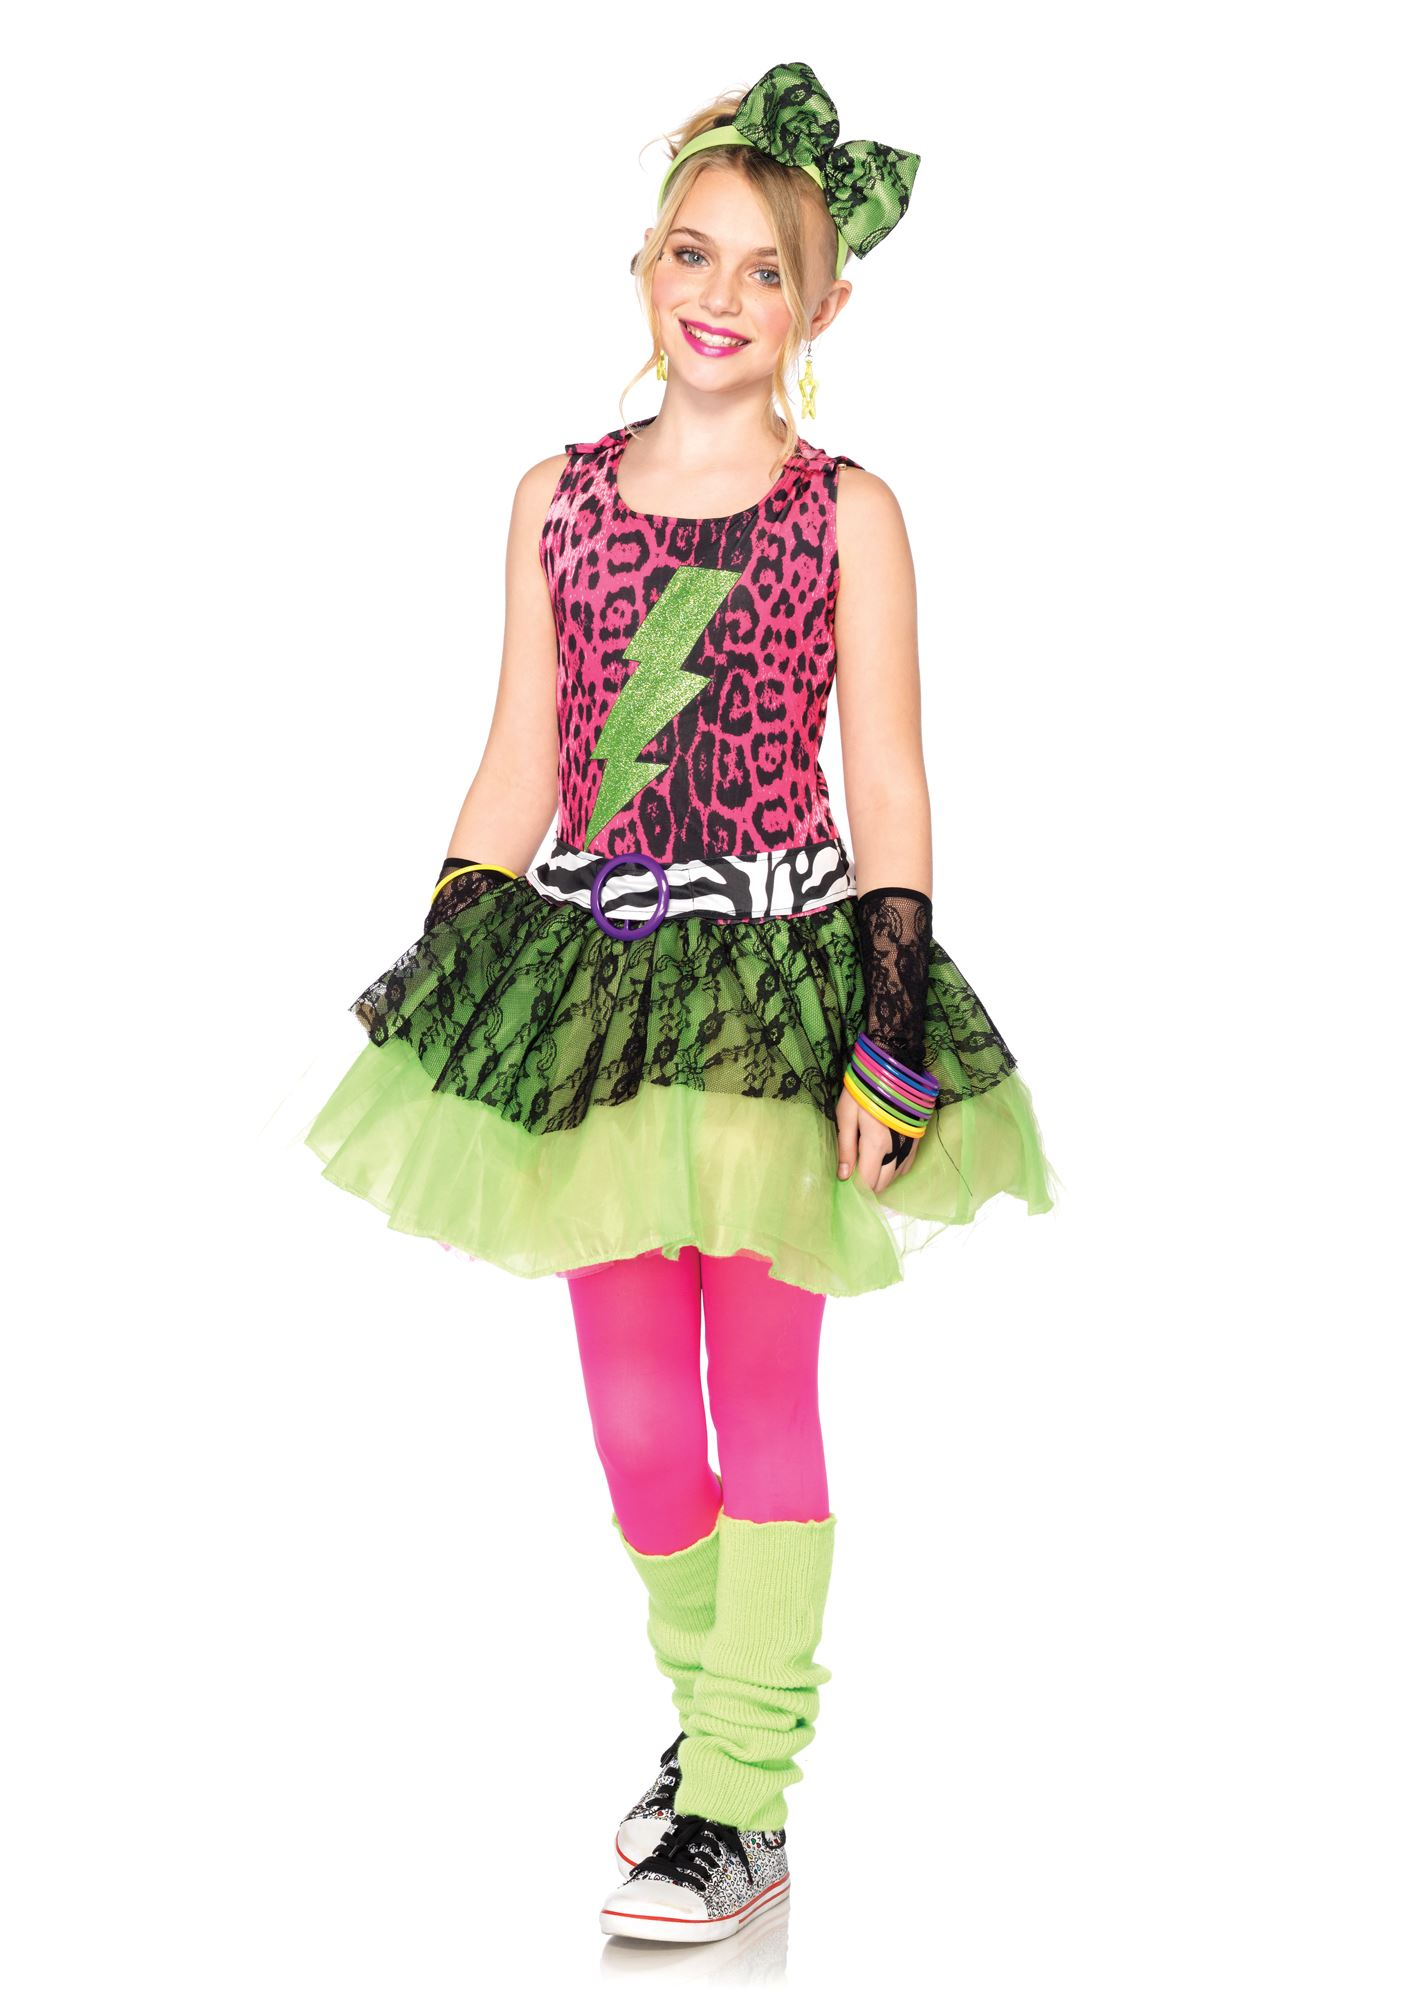 The 80s Fashion For Girls Girls Totally s Amy Costume